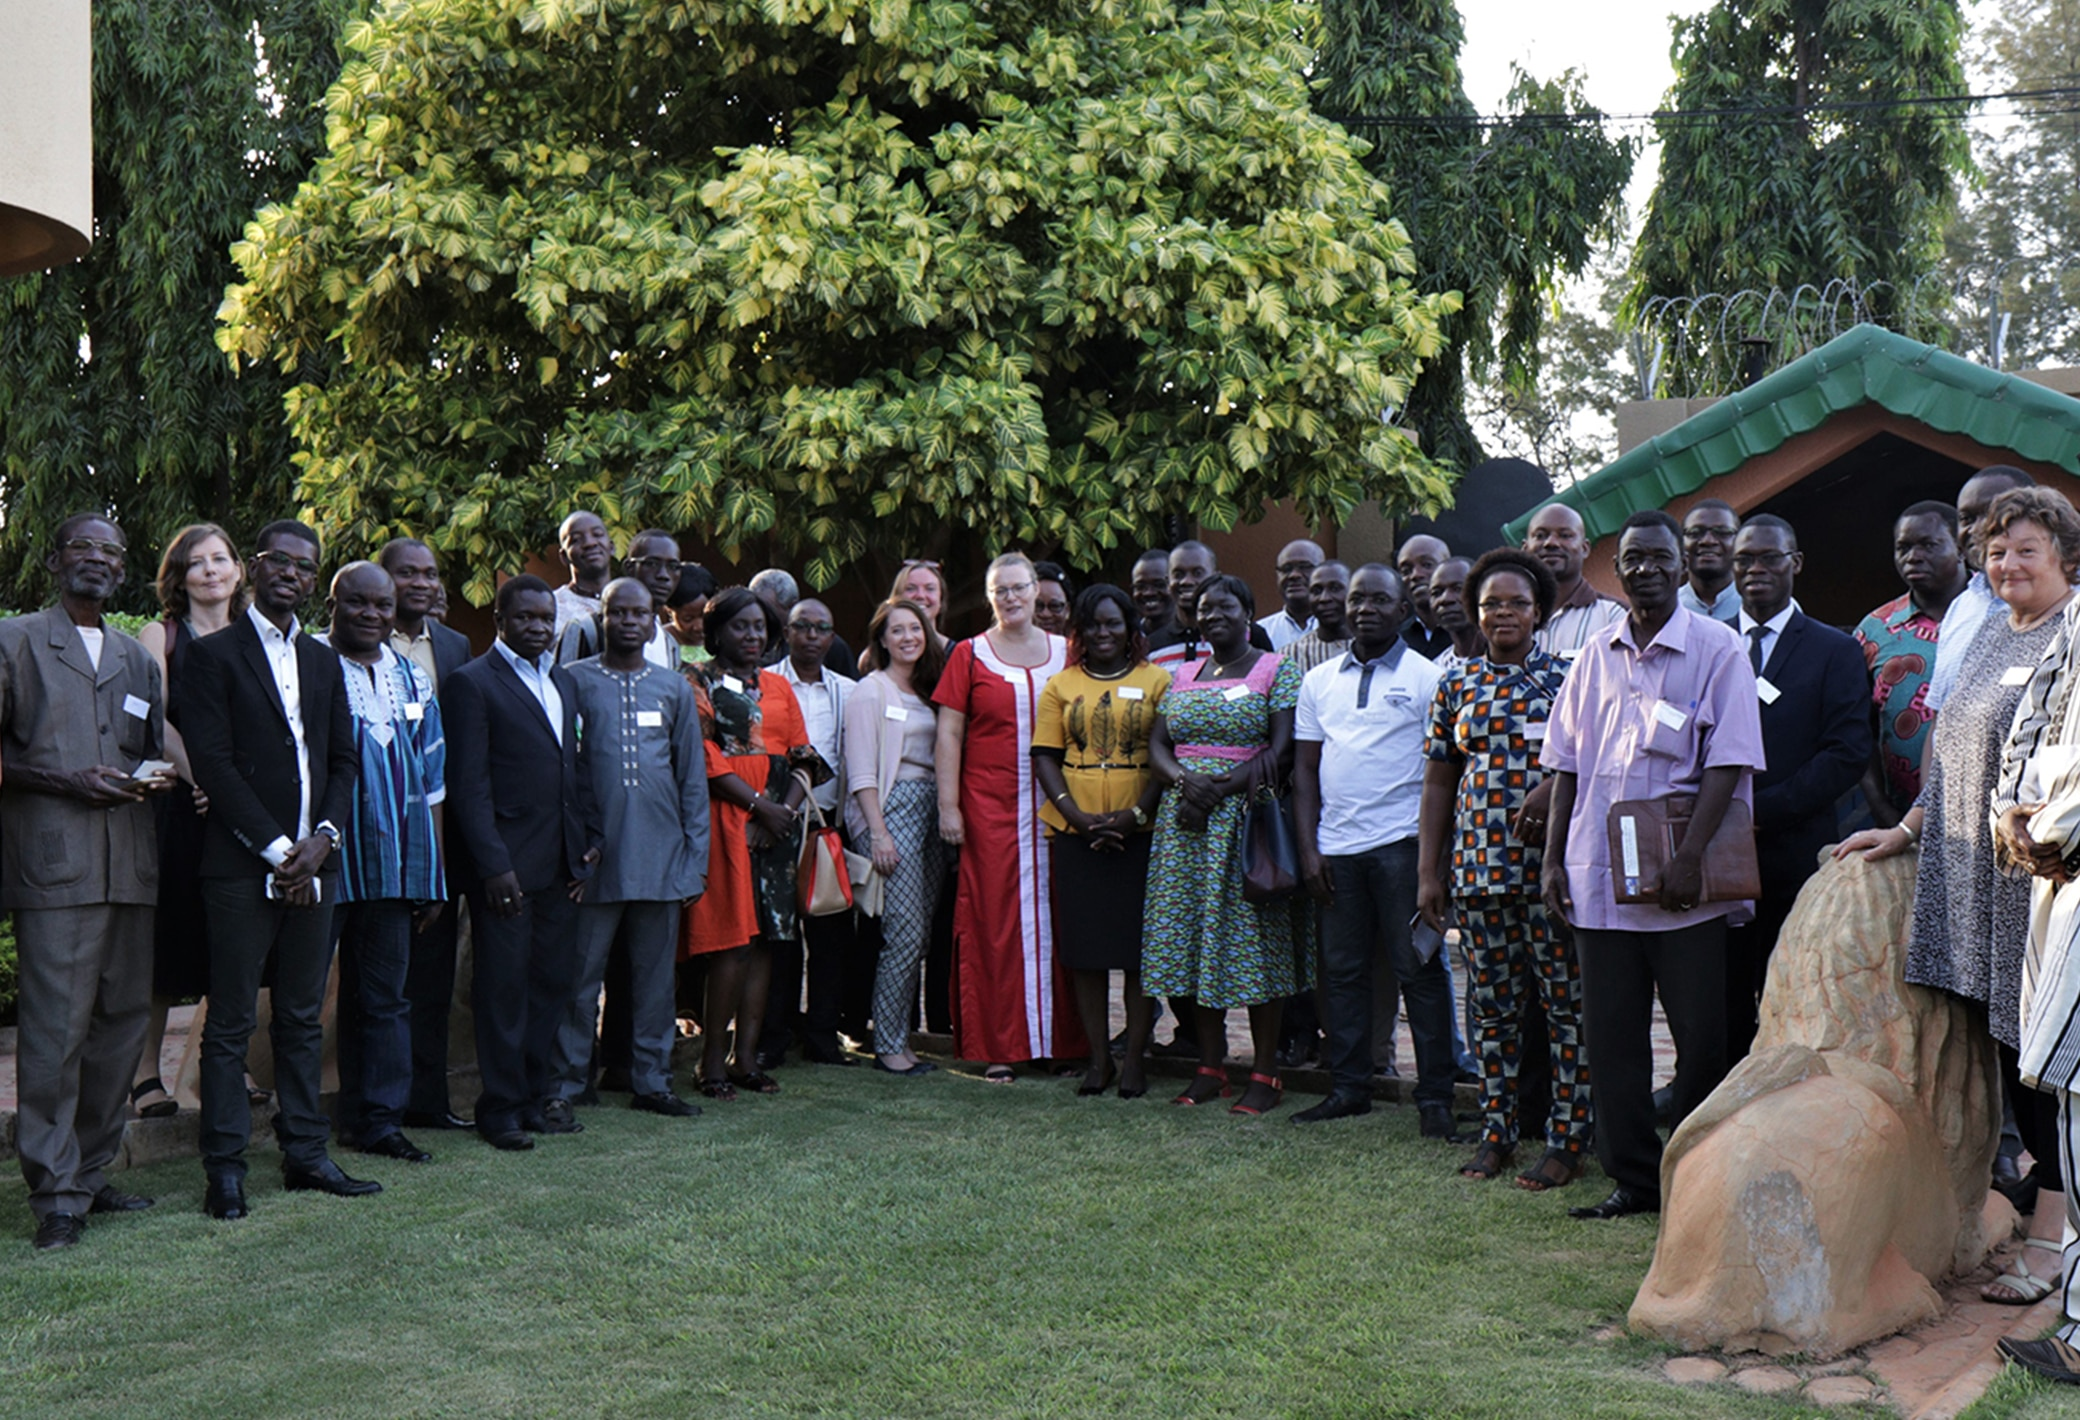 In 2014, a Danida Alumni Network was launched in Burkina Faso as part of Denmark's public diplomacy strategy